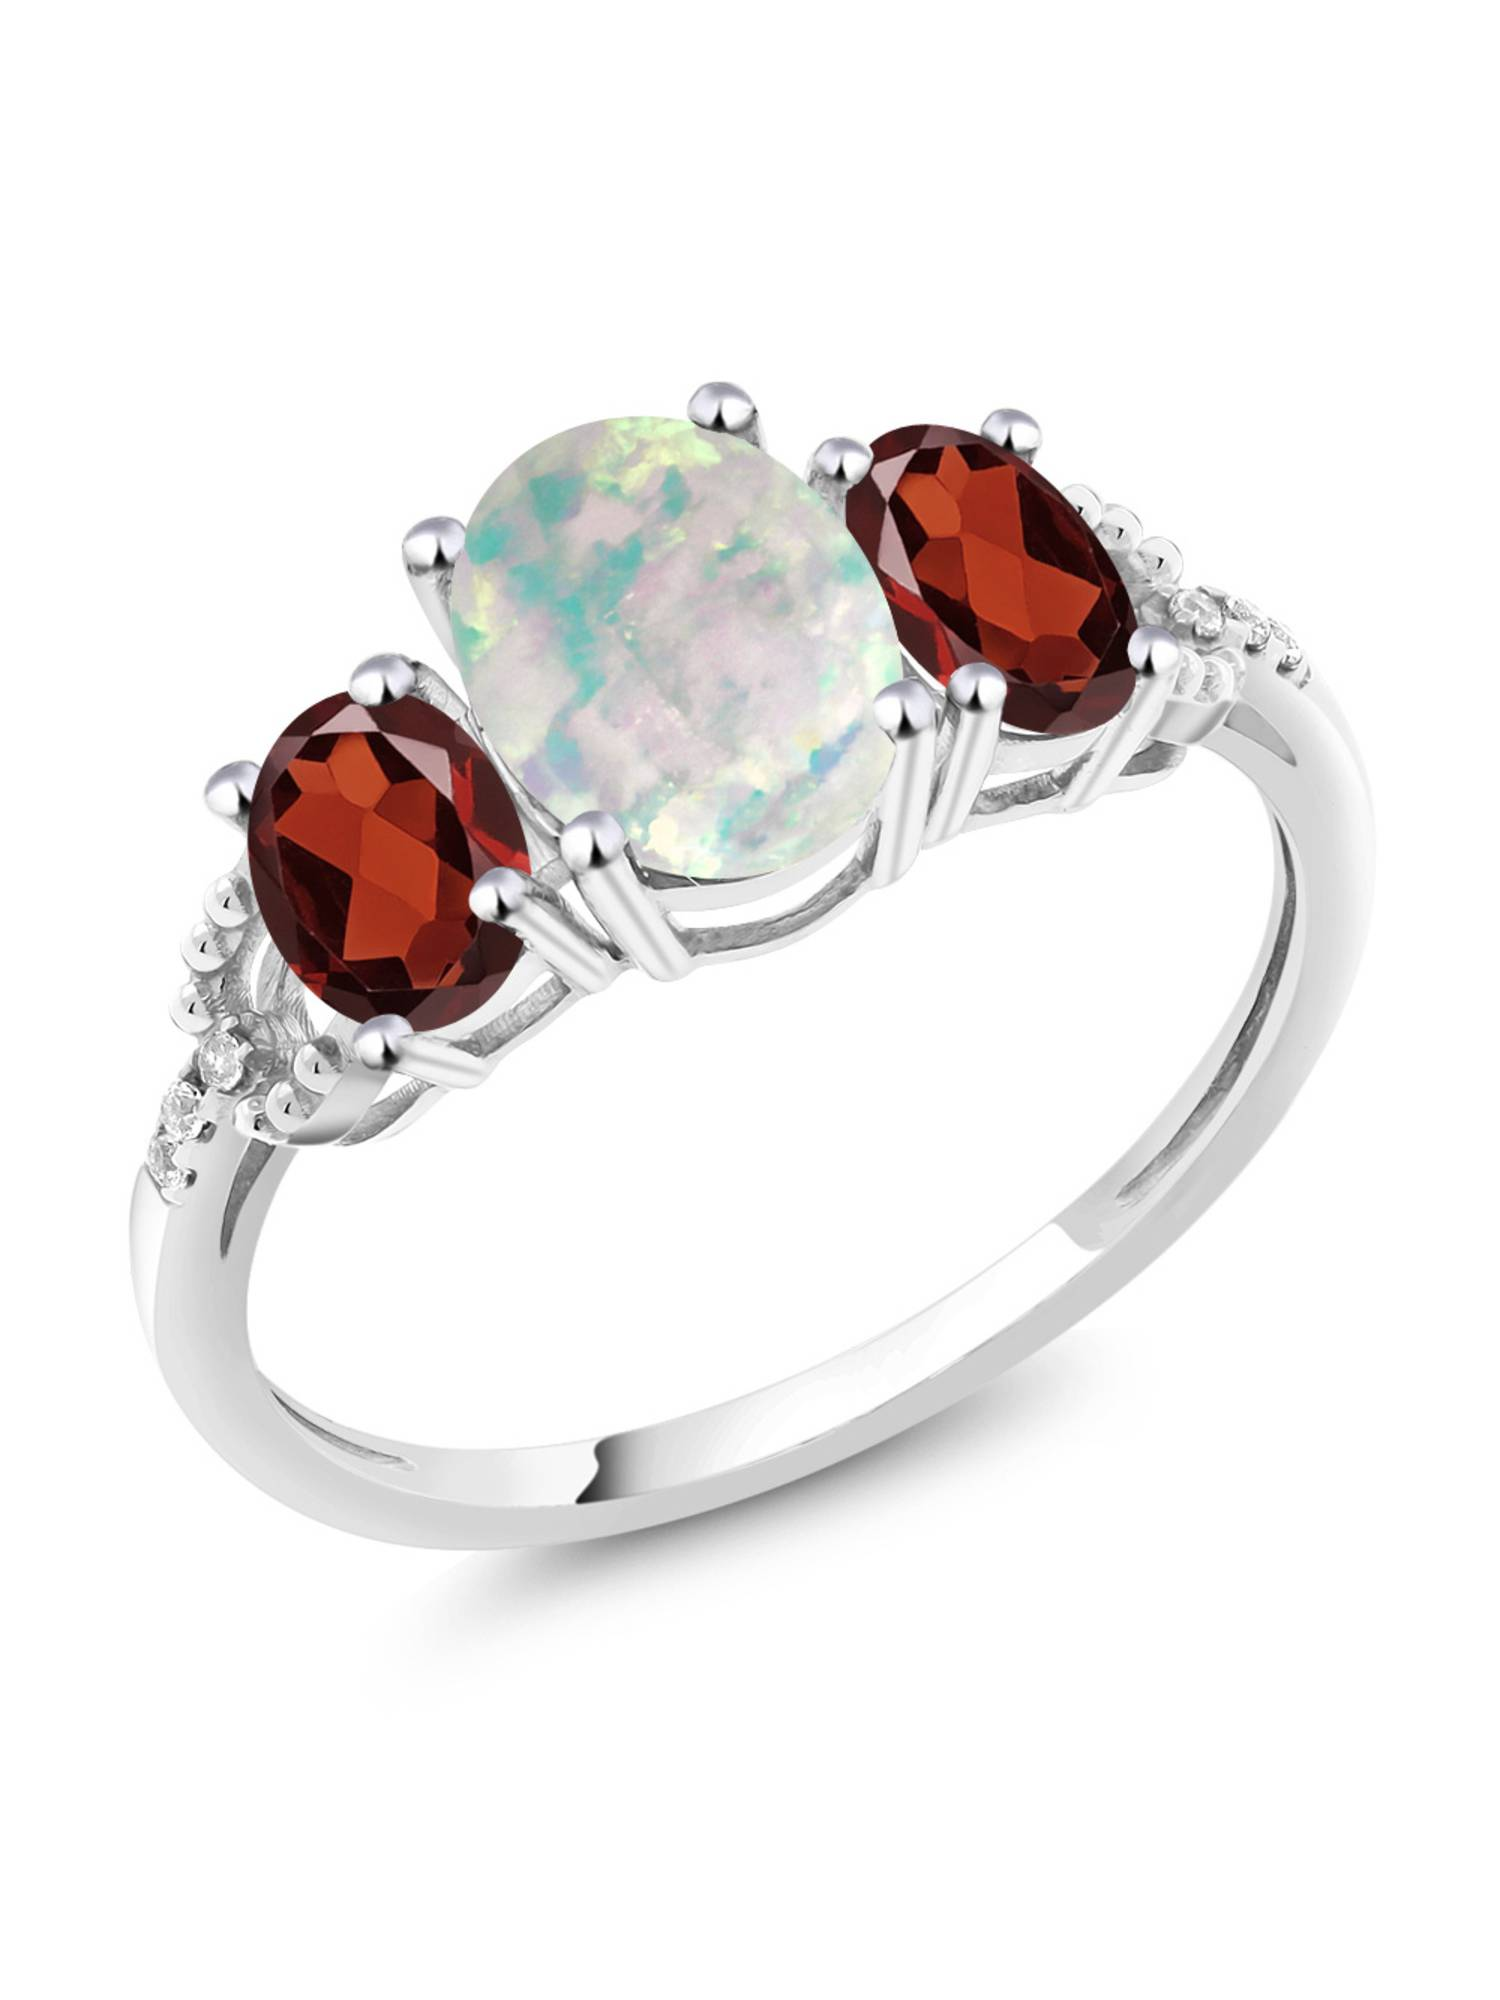 10K White Gold Diamond Accent Three-Stone Engagement Ring set with 2.10 Ct Cabochon White Simulated Opal & Red Garnet by